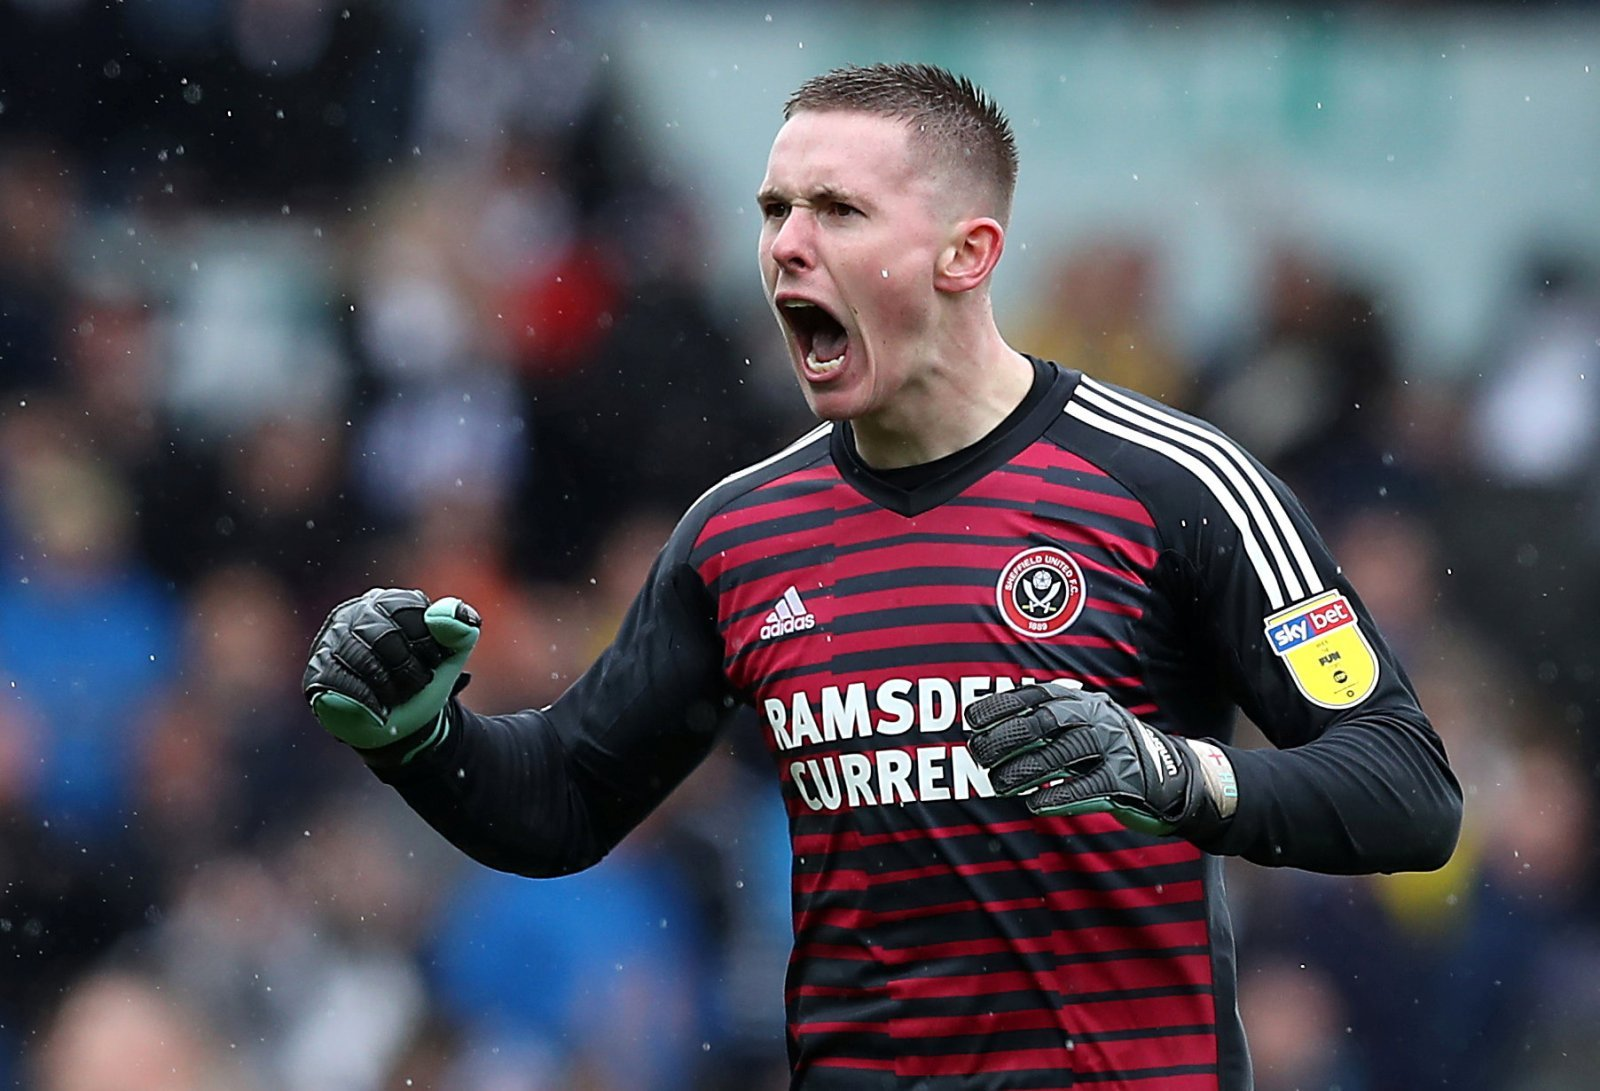 Sheffield United: Fans not happy that Nick Pope started ahead of Dean Henderson for England